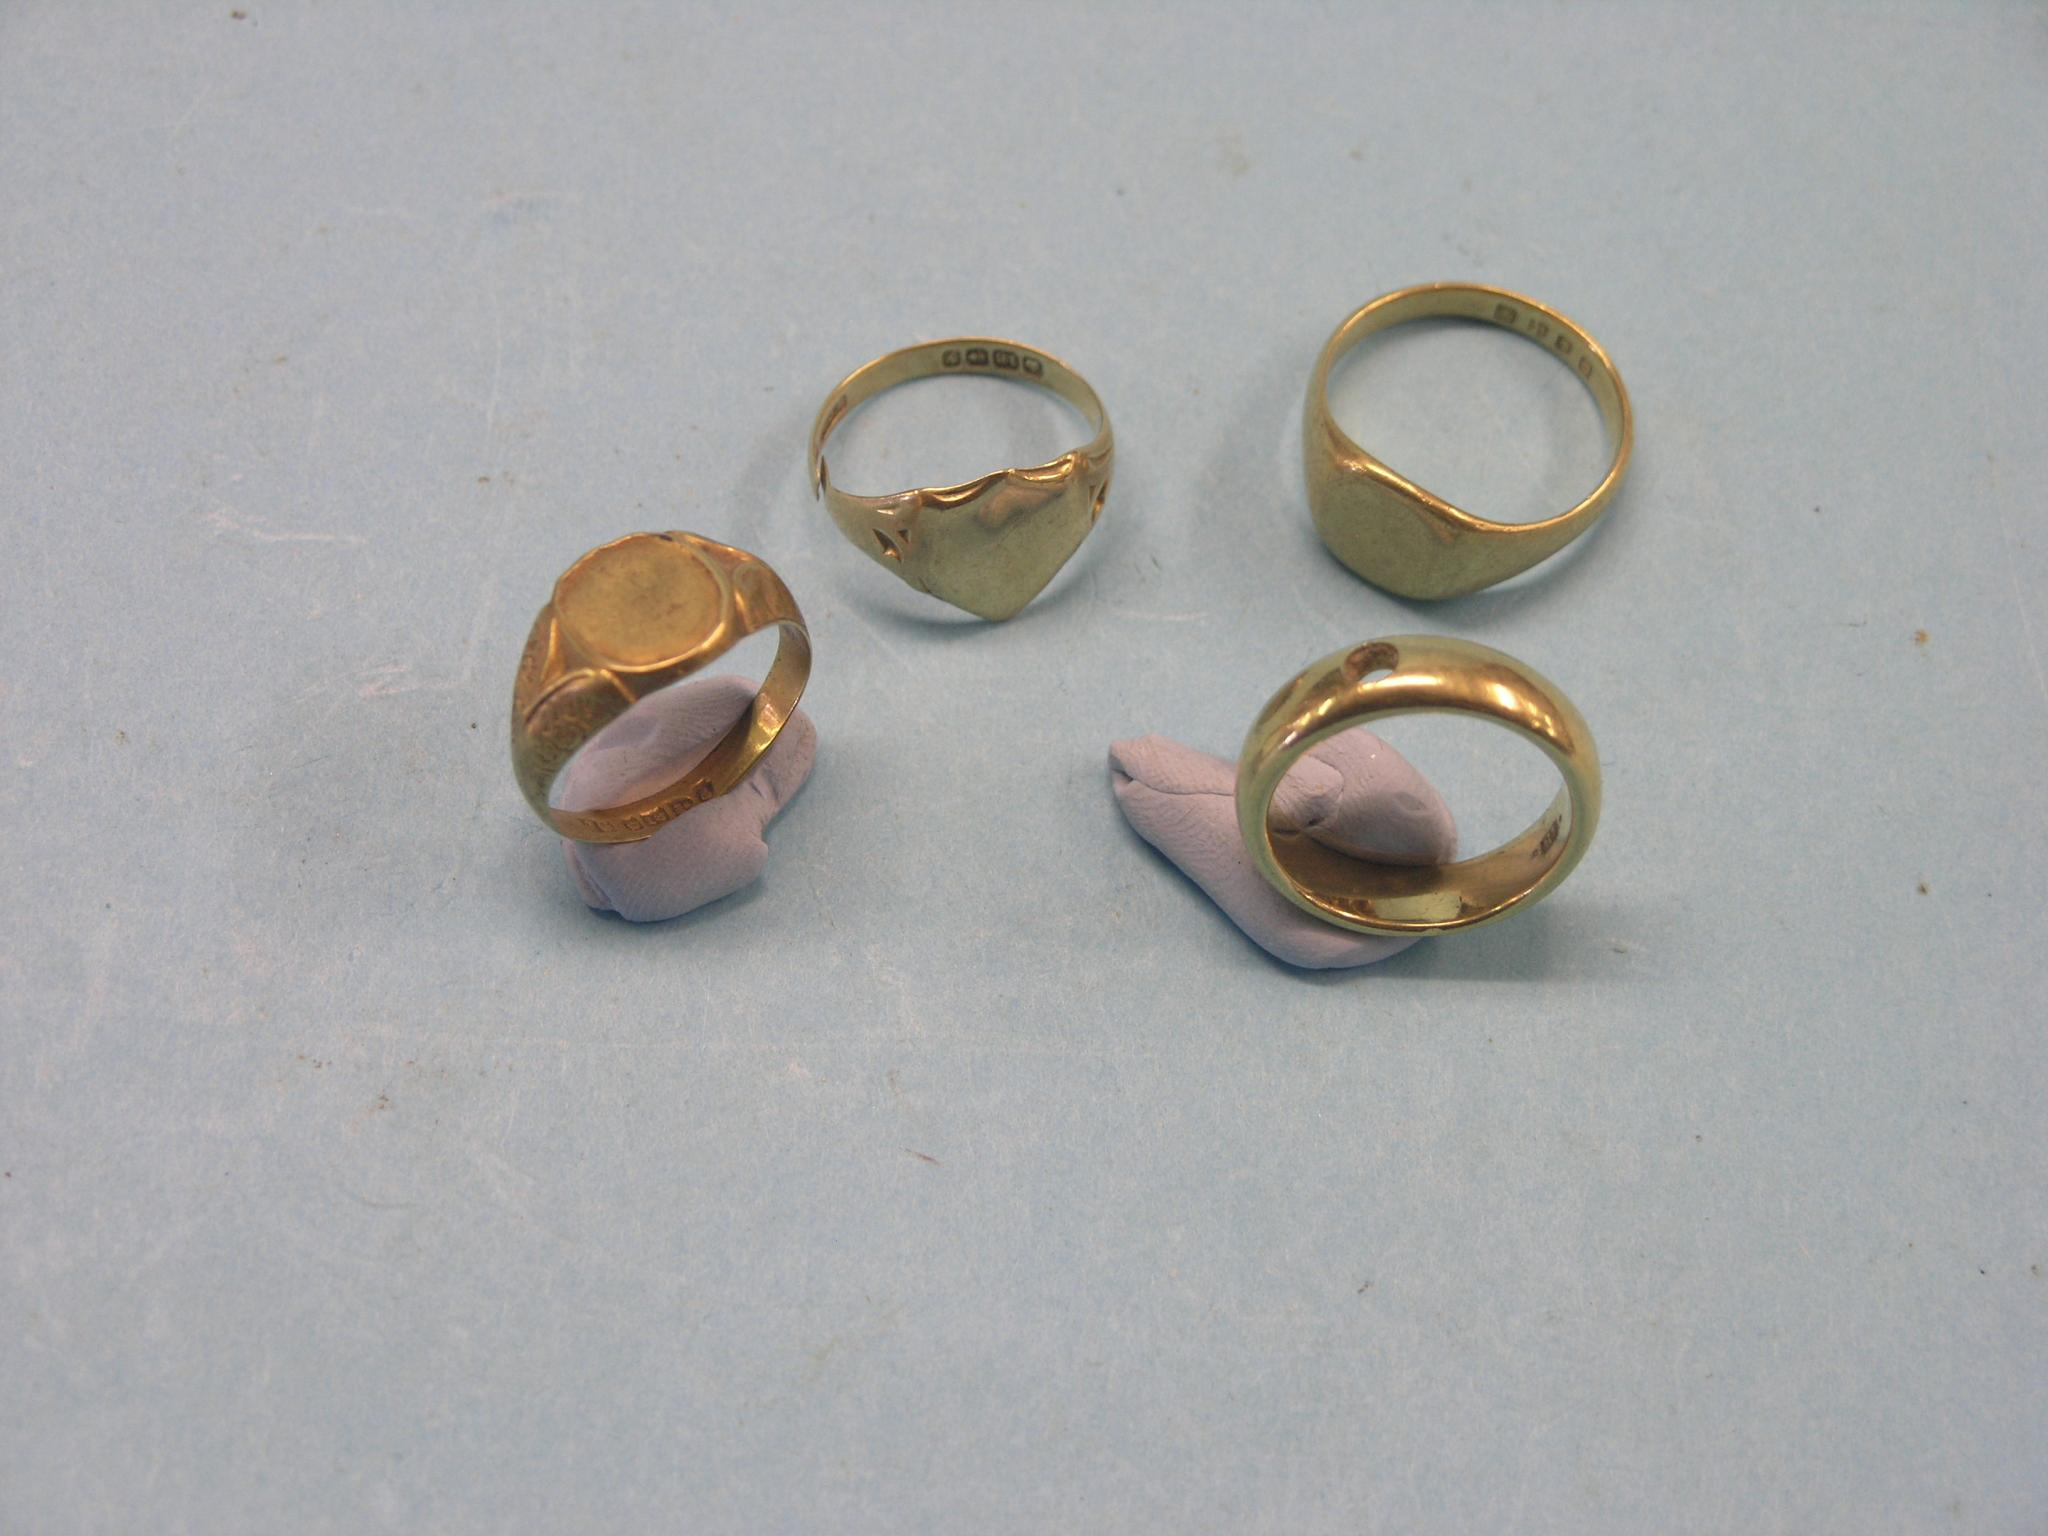 ? An 18ct. gold band ring, 11 grams, stone